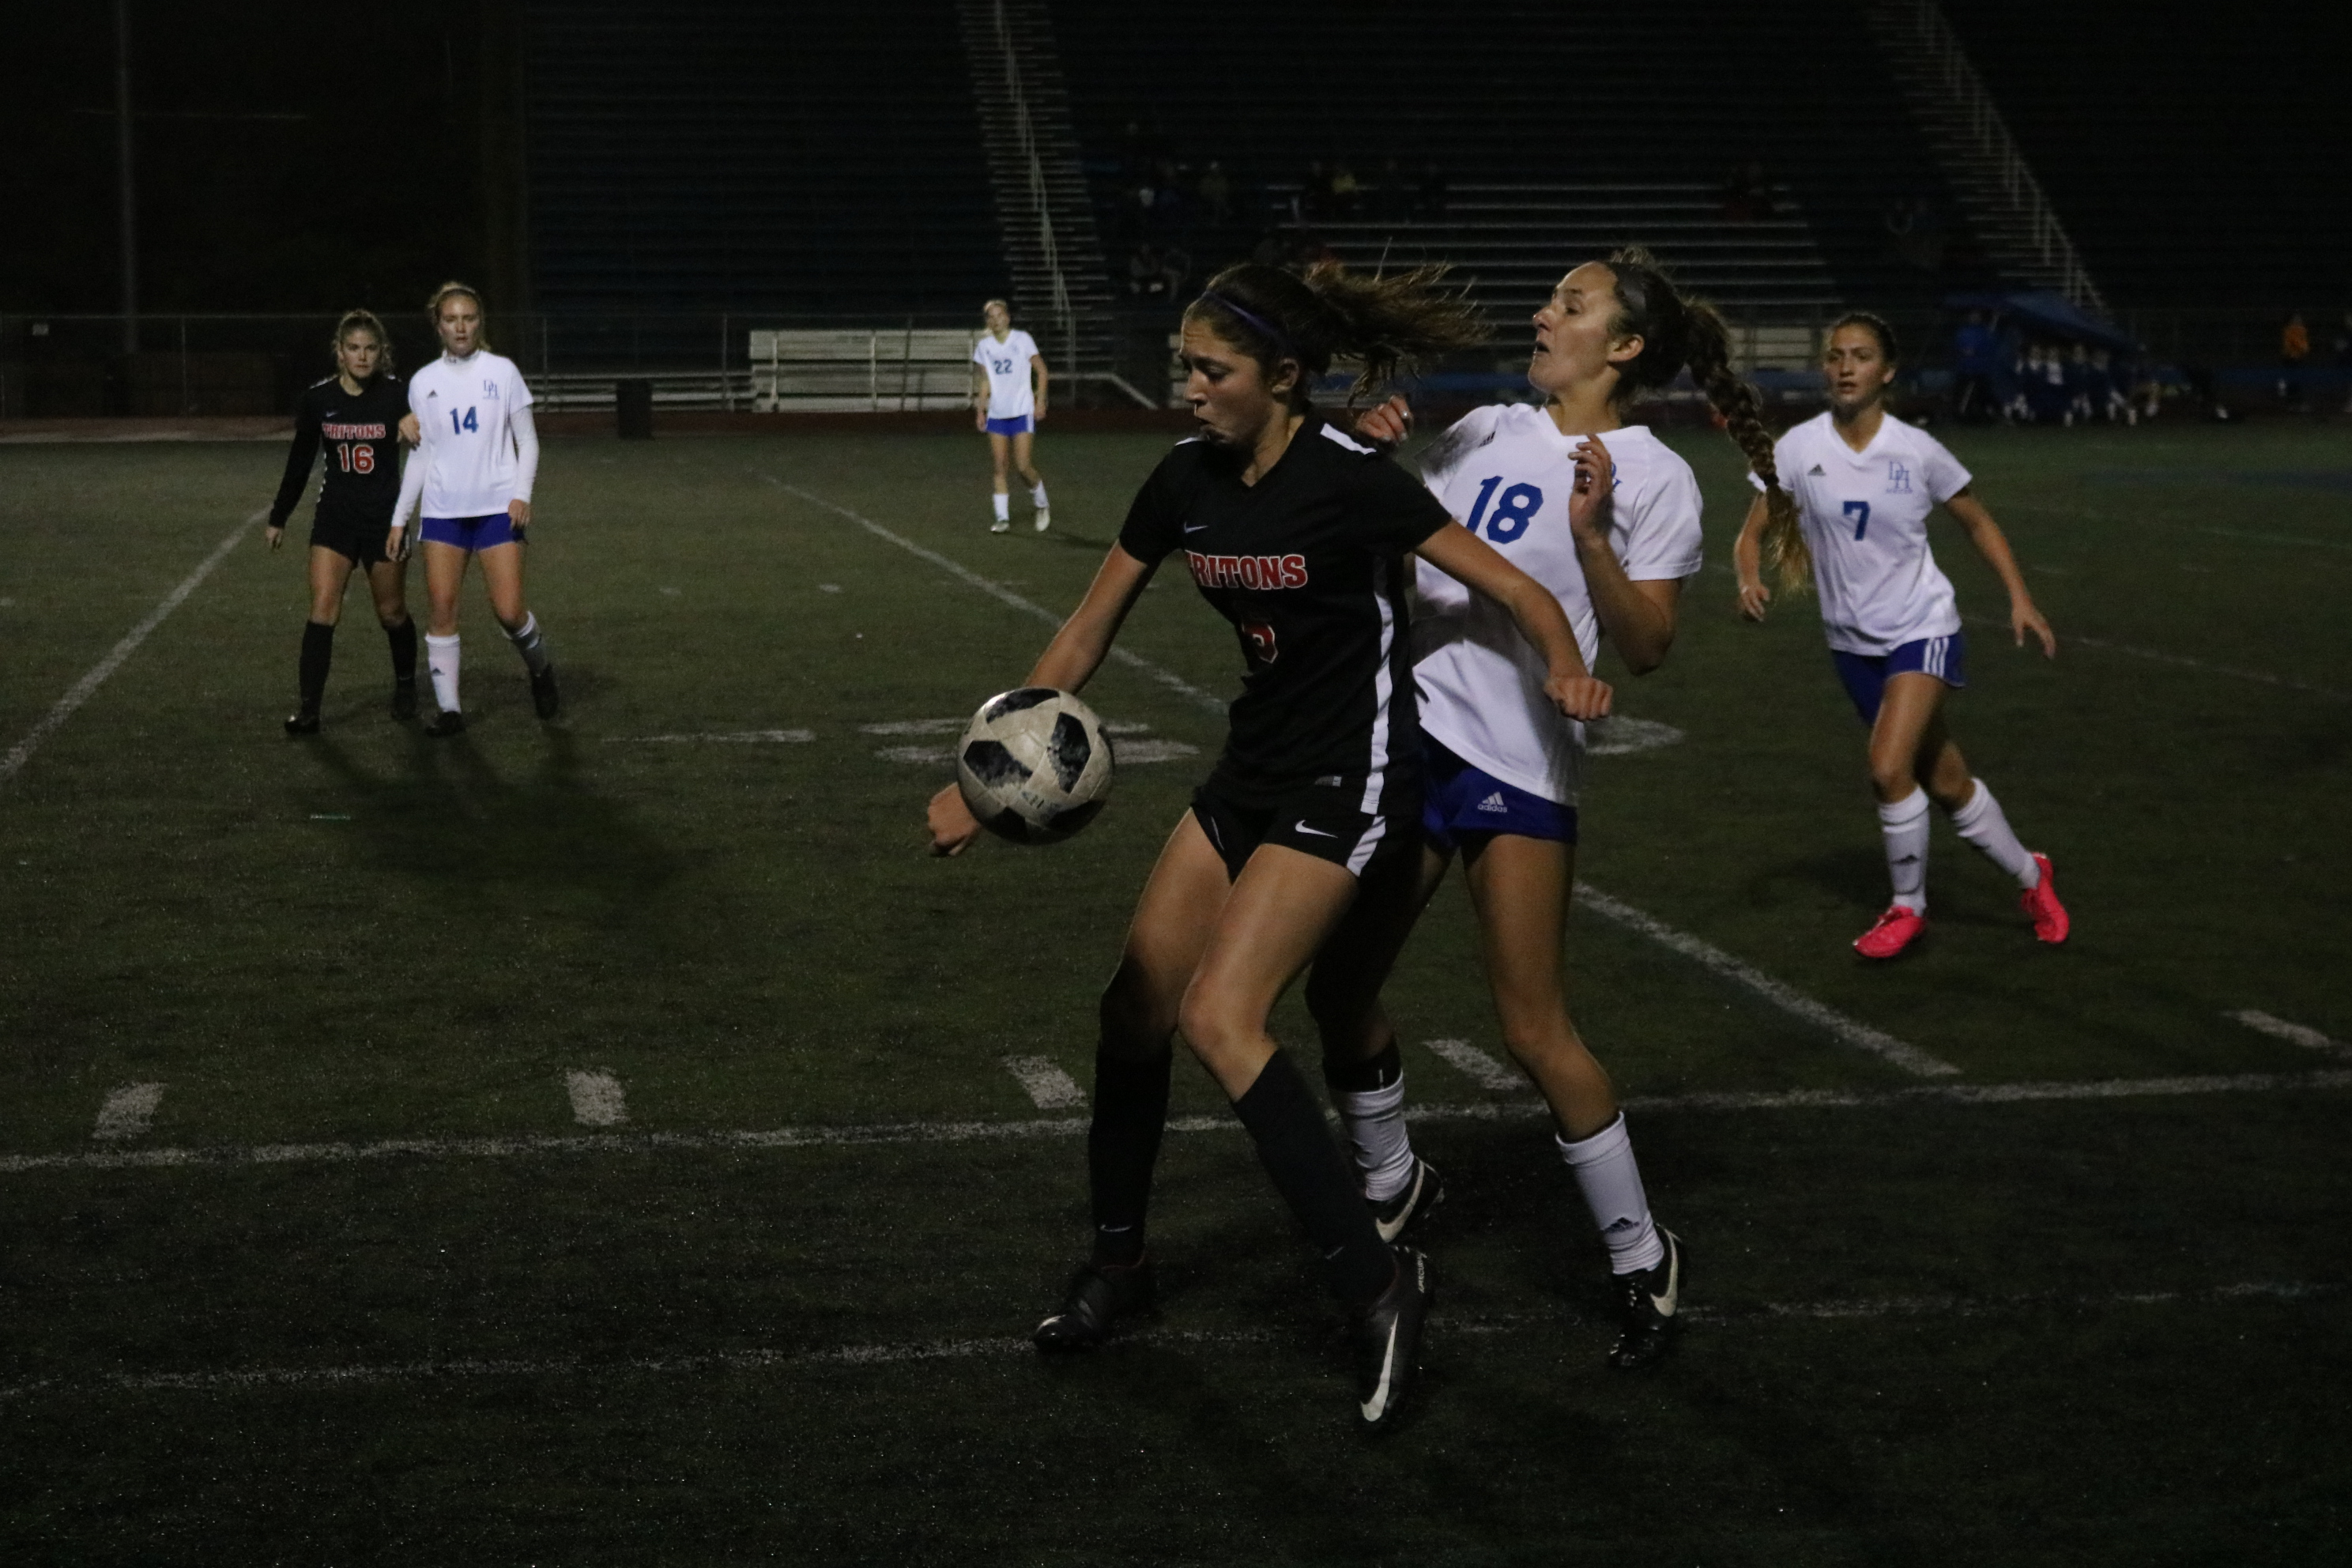 San Clemente's Maxine Davey protects the ball from a Dana Hills player. San Clemente tied Dana Hills, 1-1, on Jan. 9 at Dana Hills High School. Photo: Zach Cavanagh